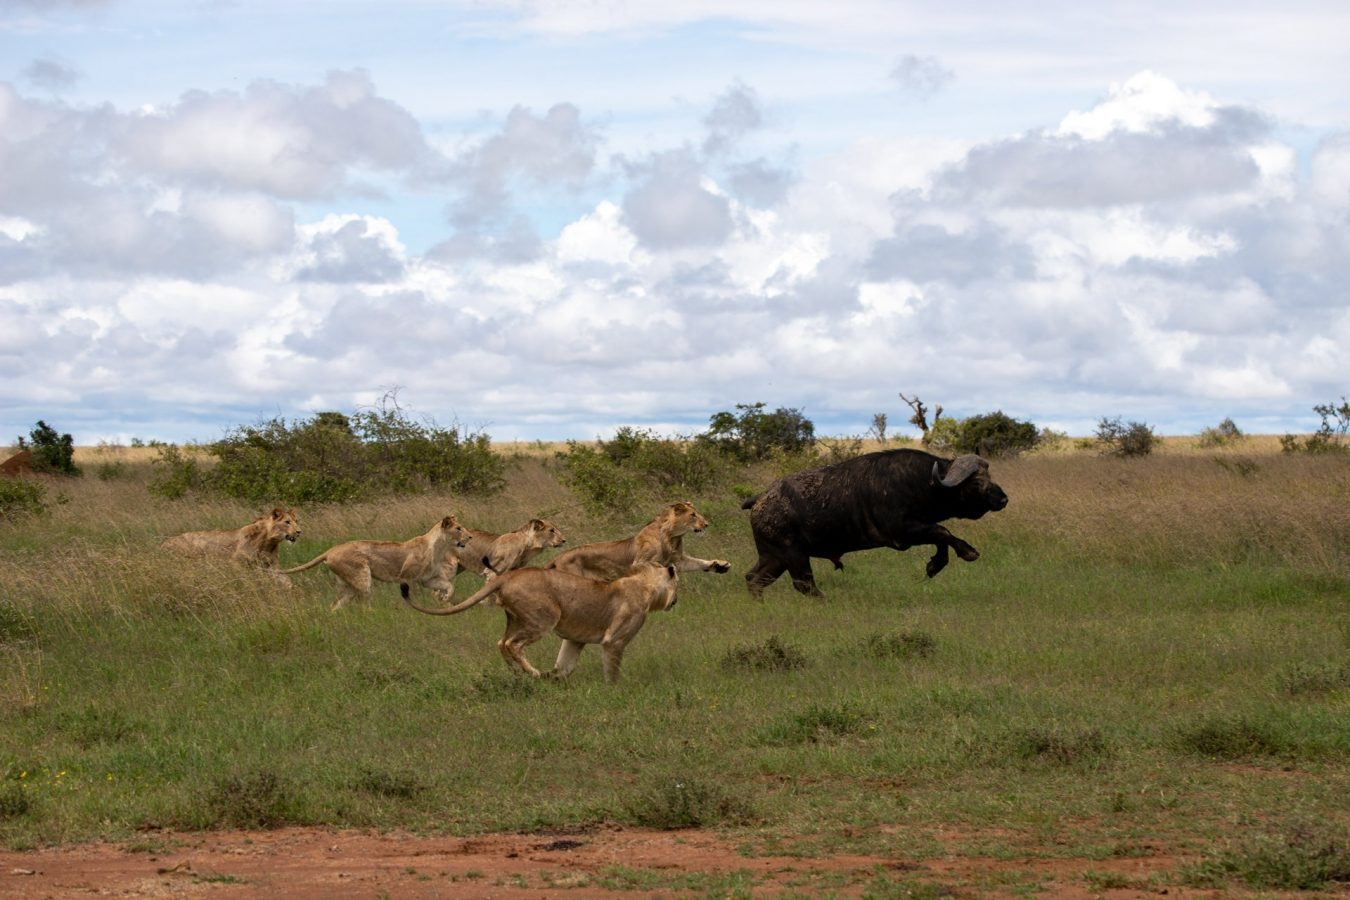 then the lions chased the buffalo a litle more